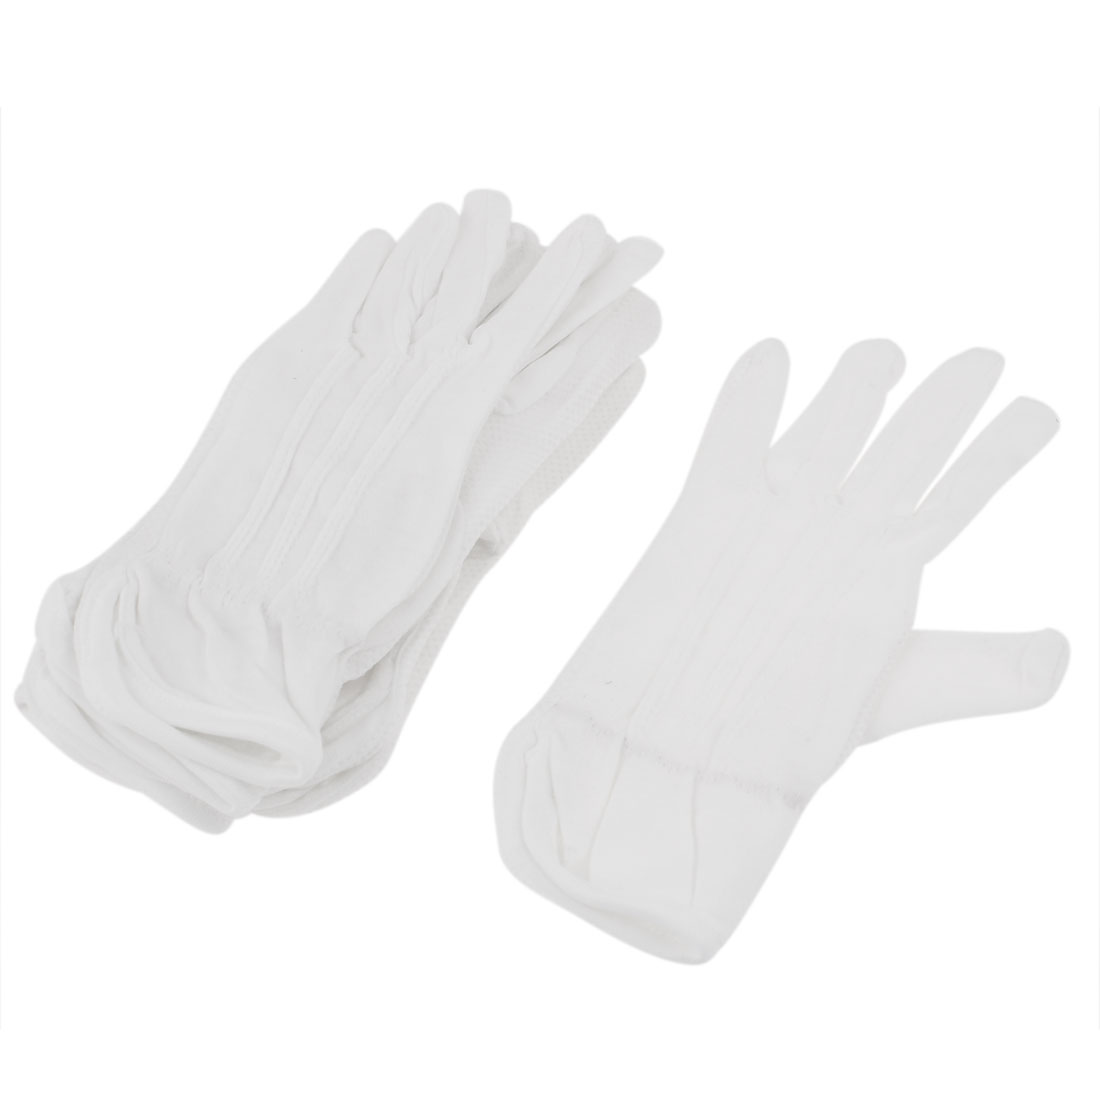 Driving gloves at walmart - By Unique Bargains